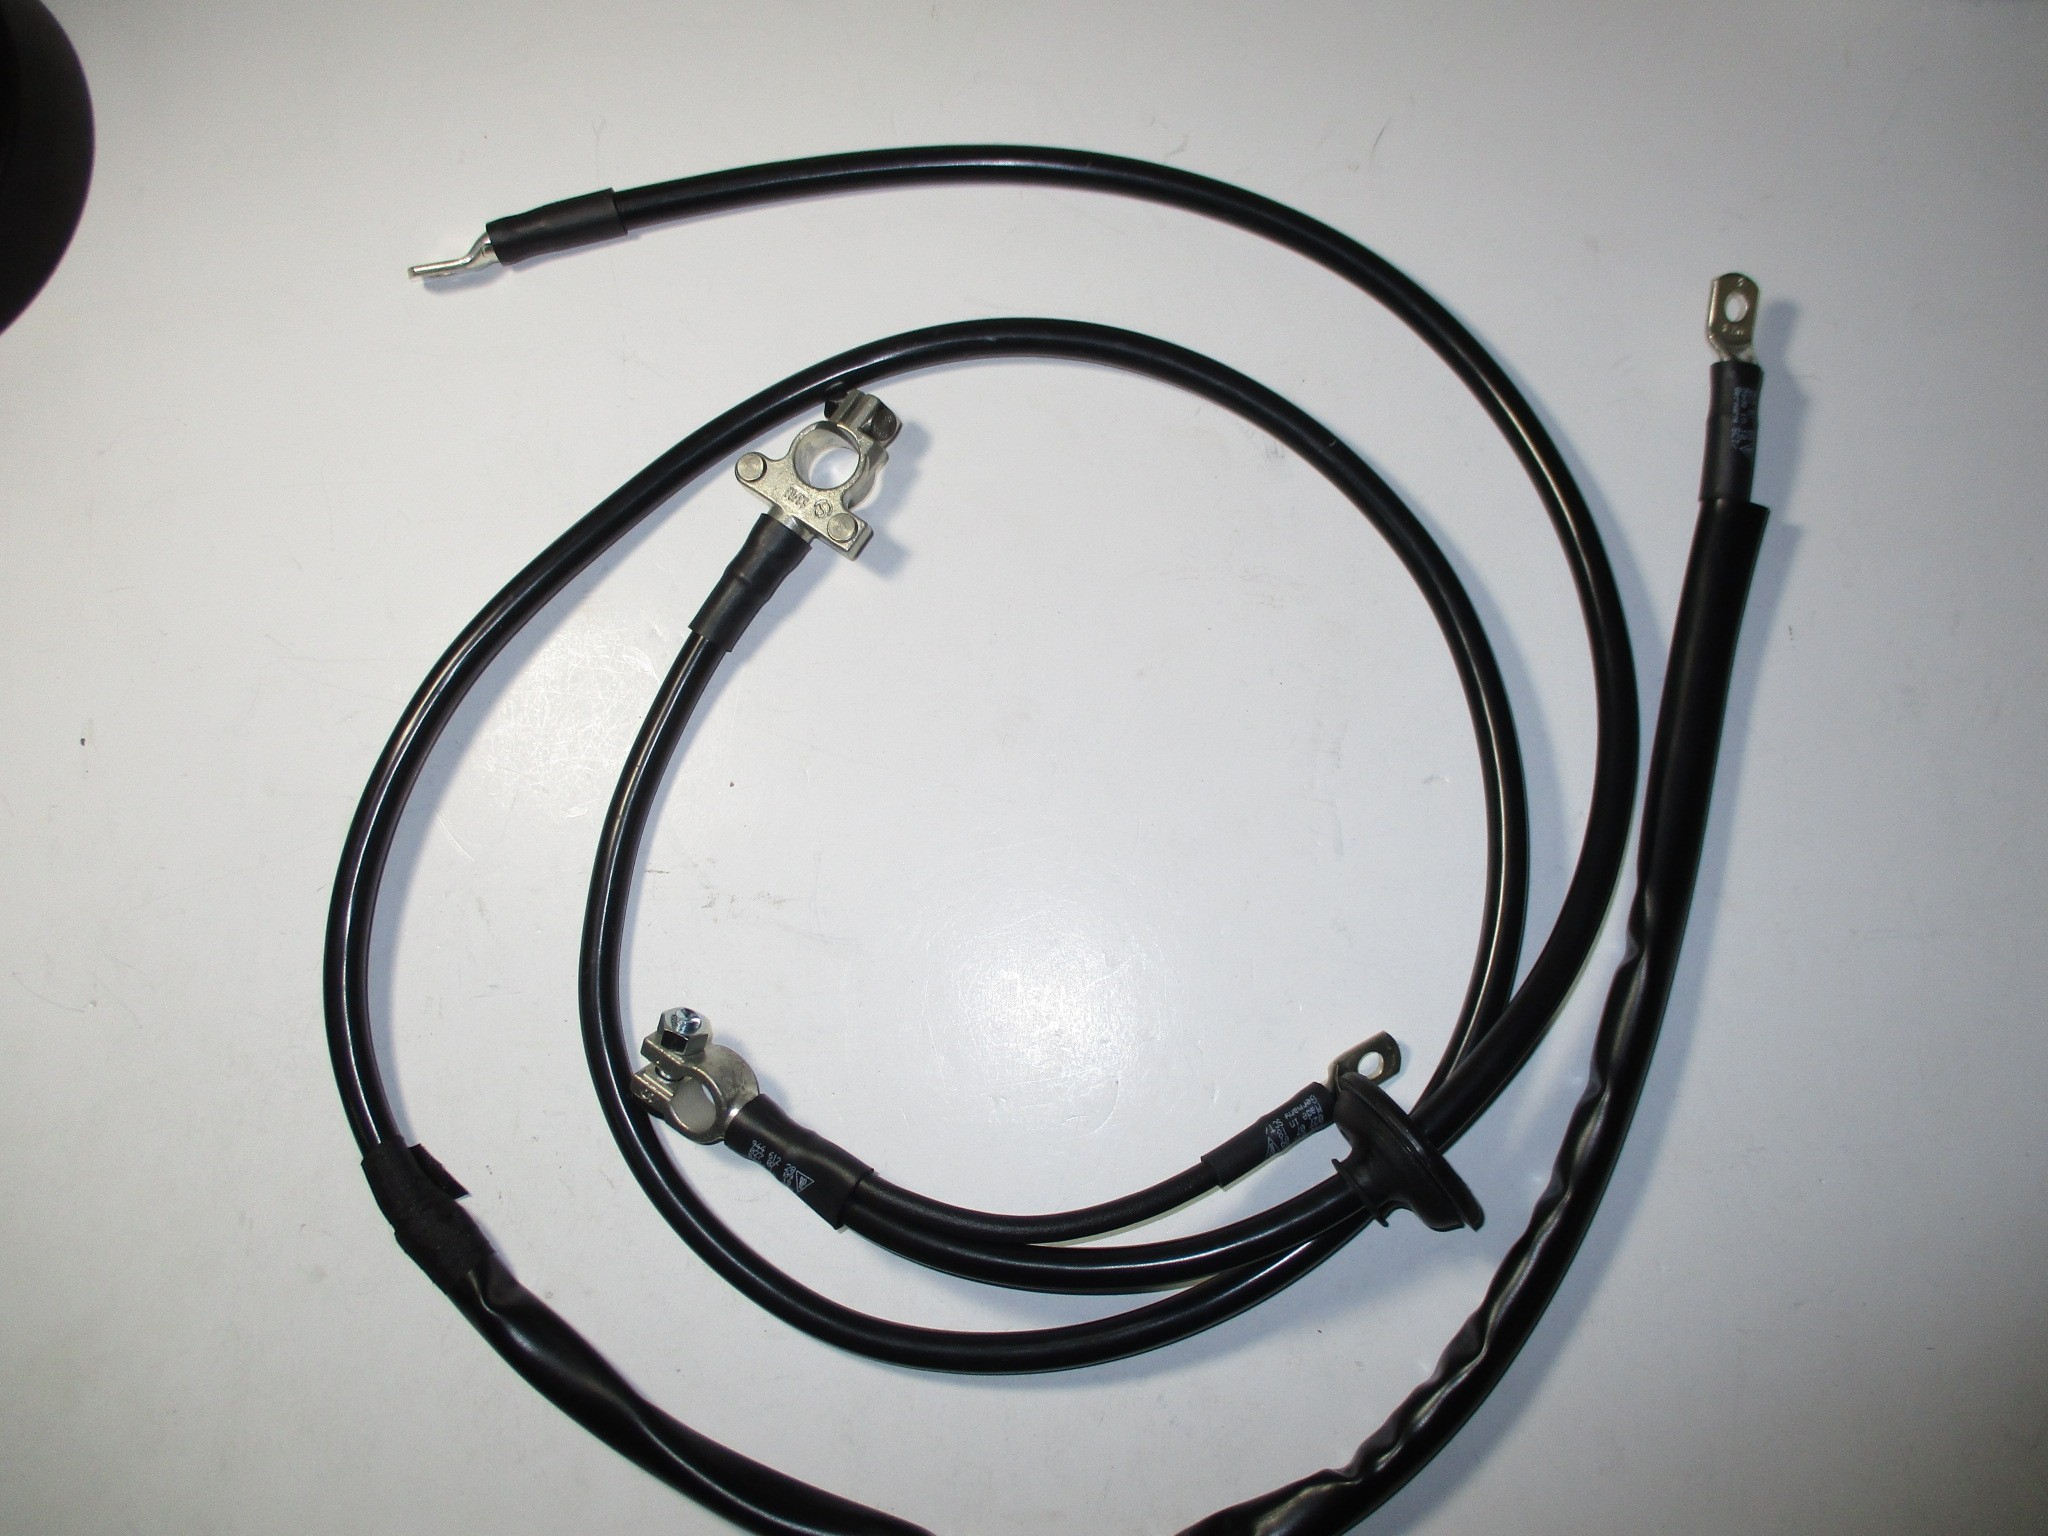 Battery Starter Cable Harness 85/2 to 95 924S 944 and 968